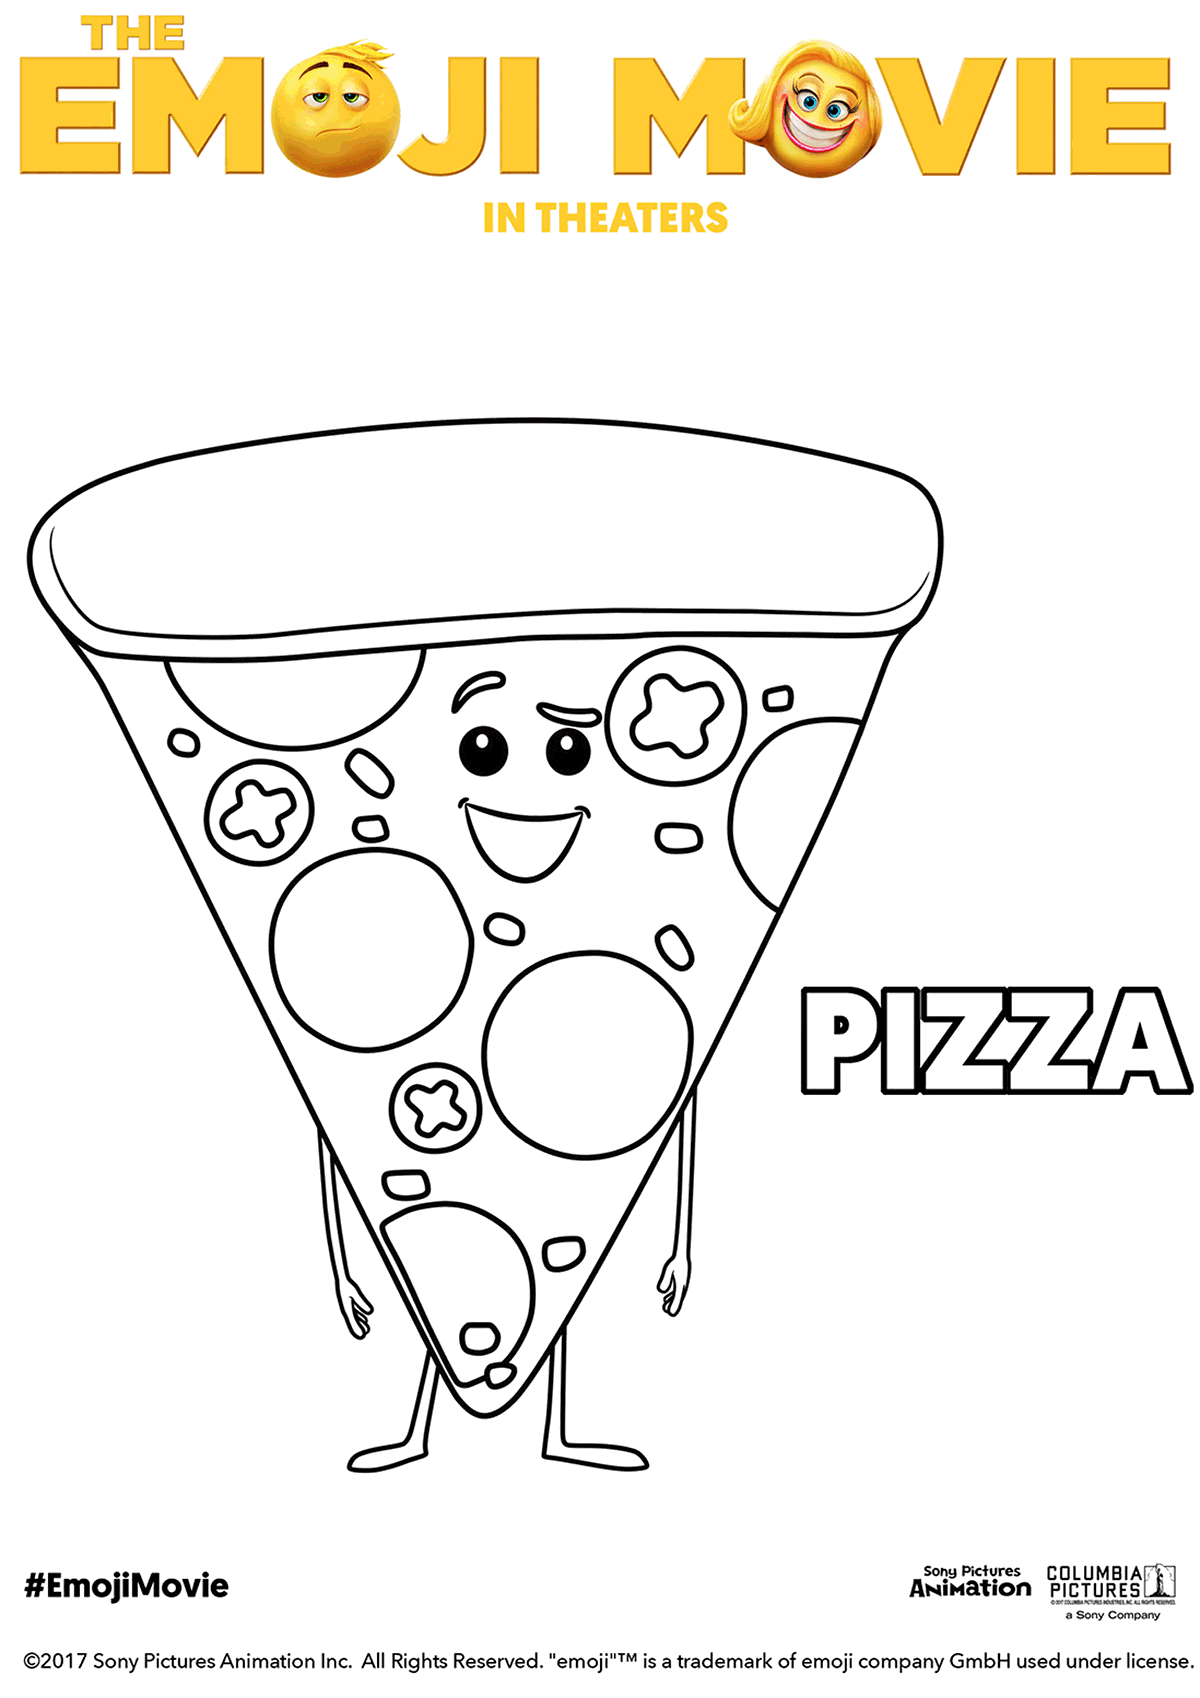 The Emoji Movie Pizza Coloring Page Free Movie Coloring Pages